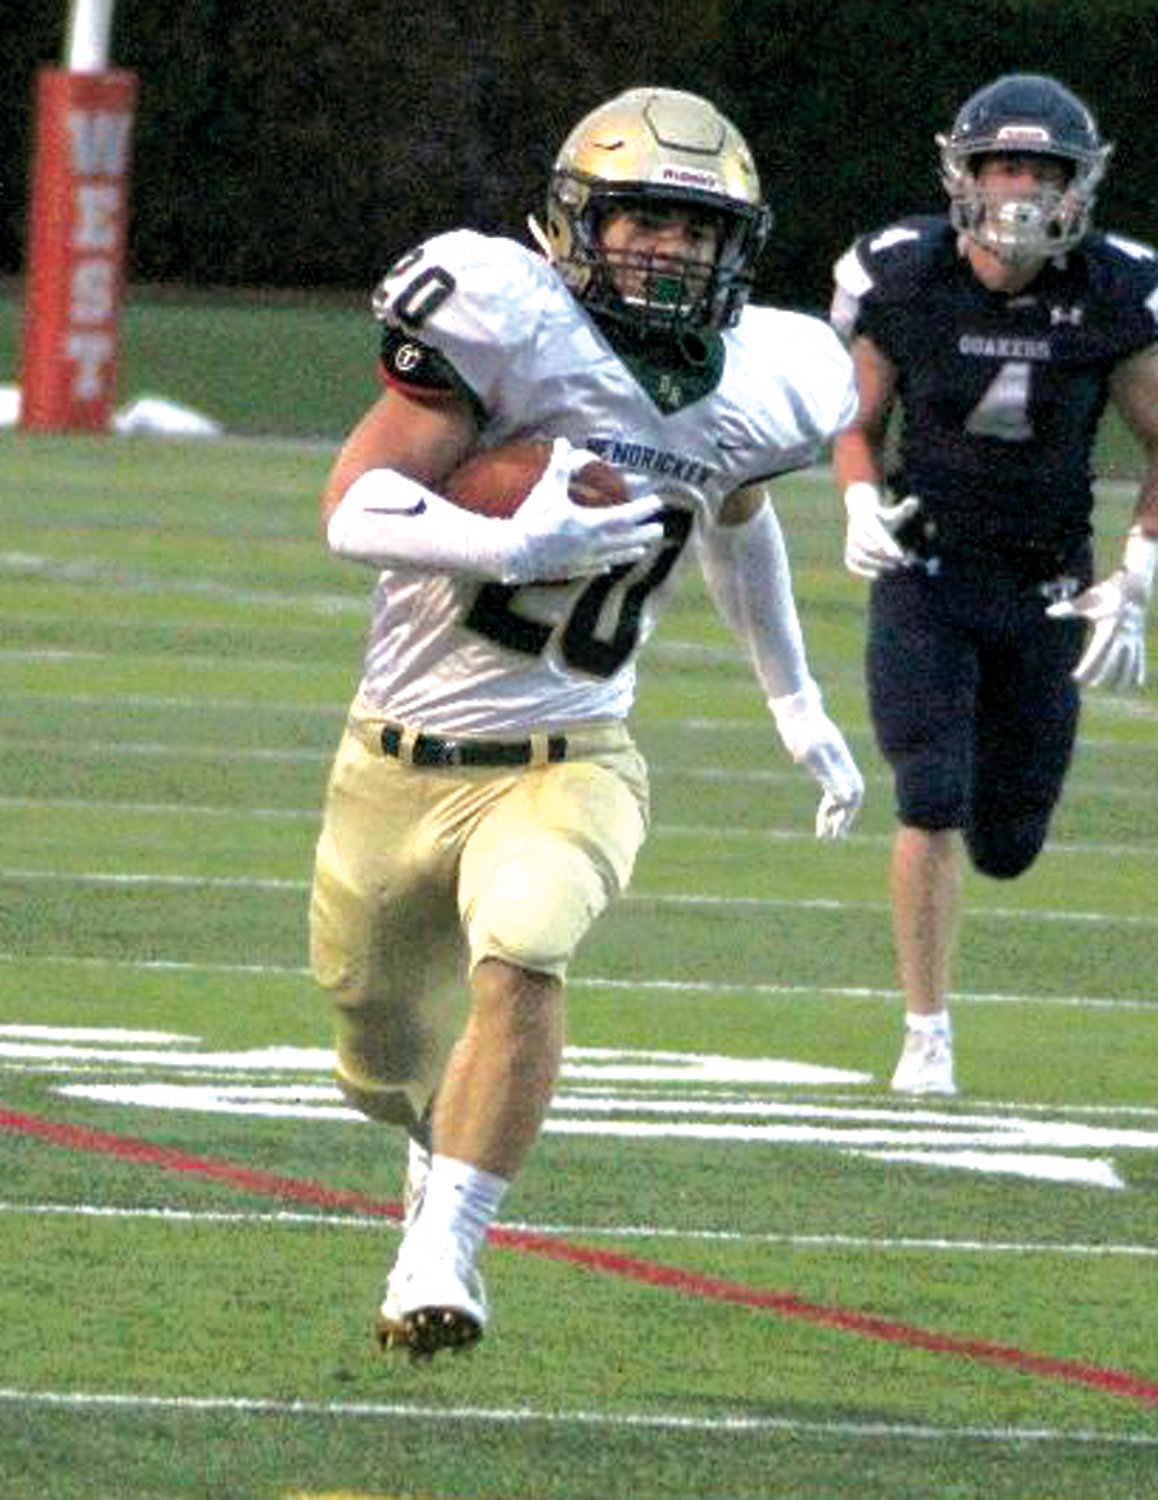 FOR THE SCORE: Bishop Hendricken's Nic Comella sprints his way to a touchdown last week.